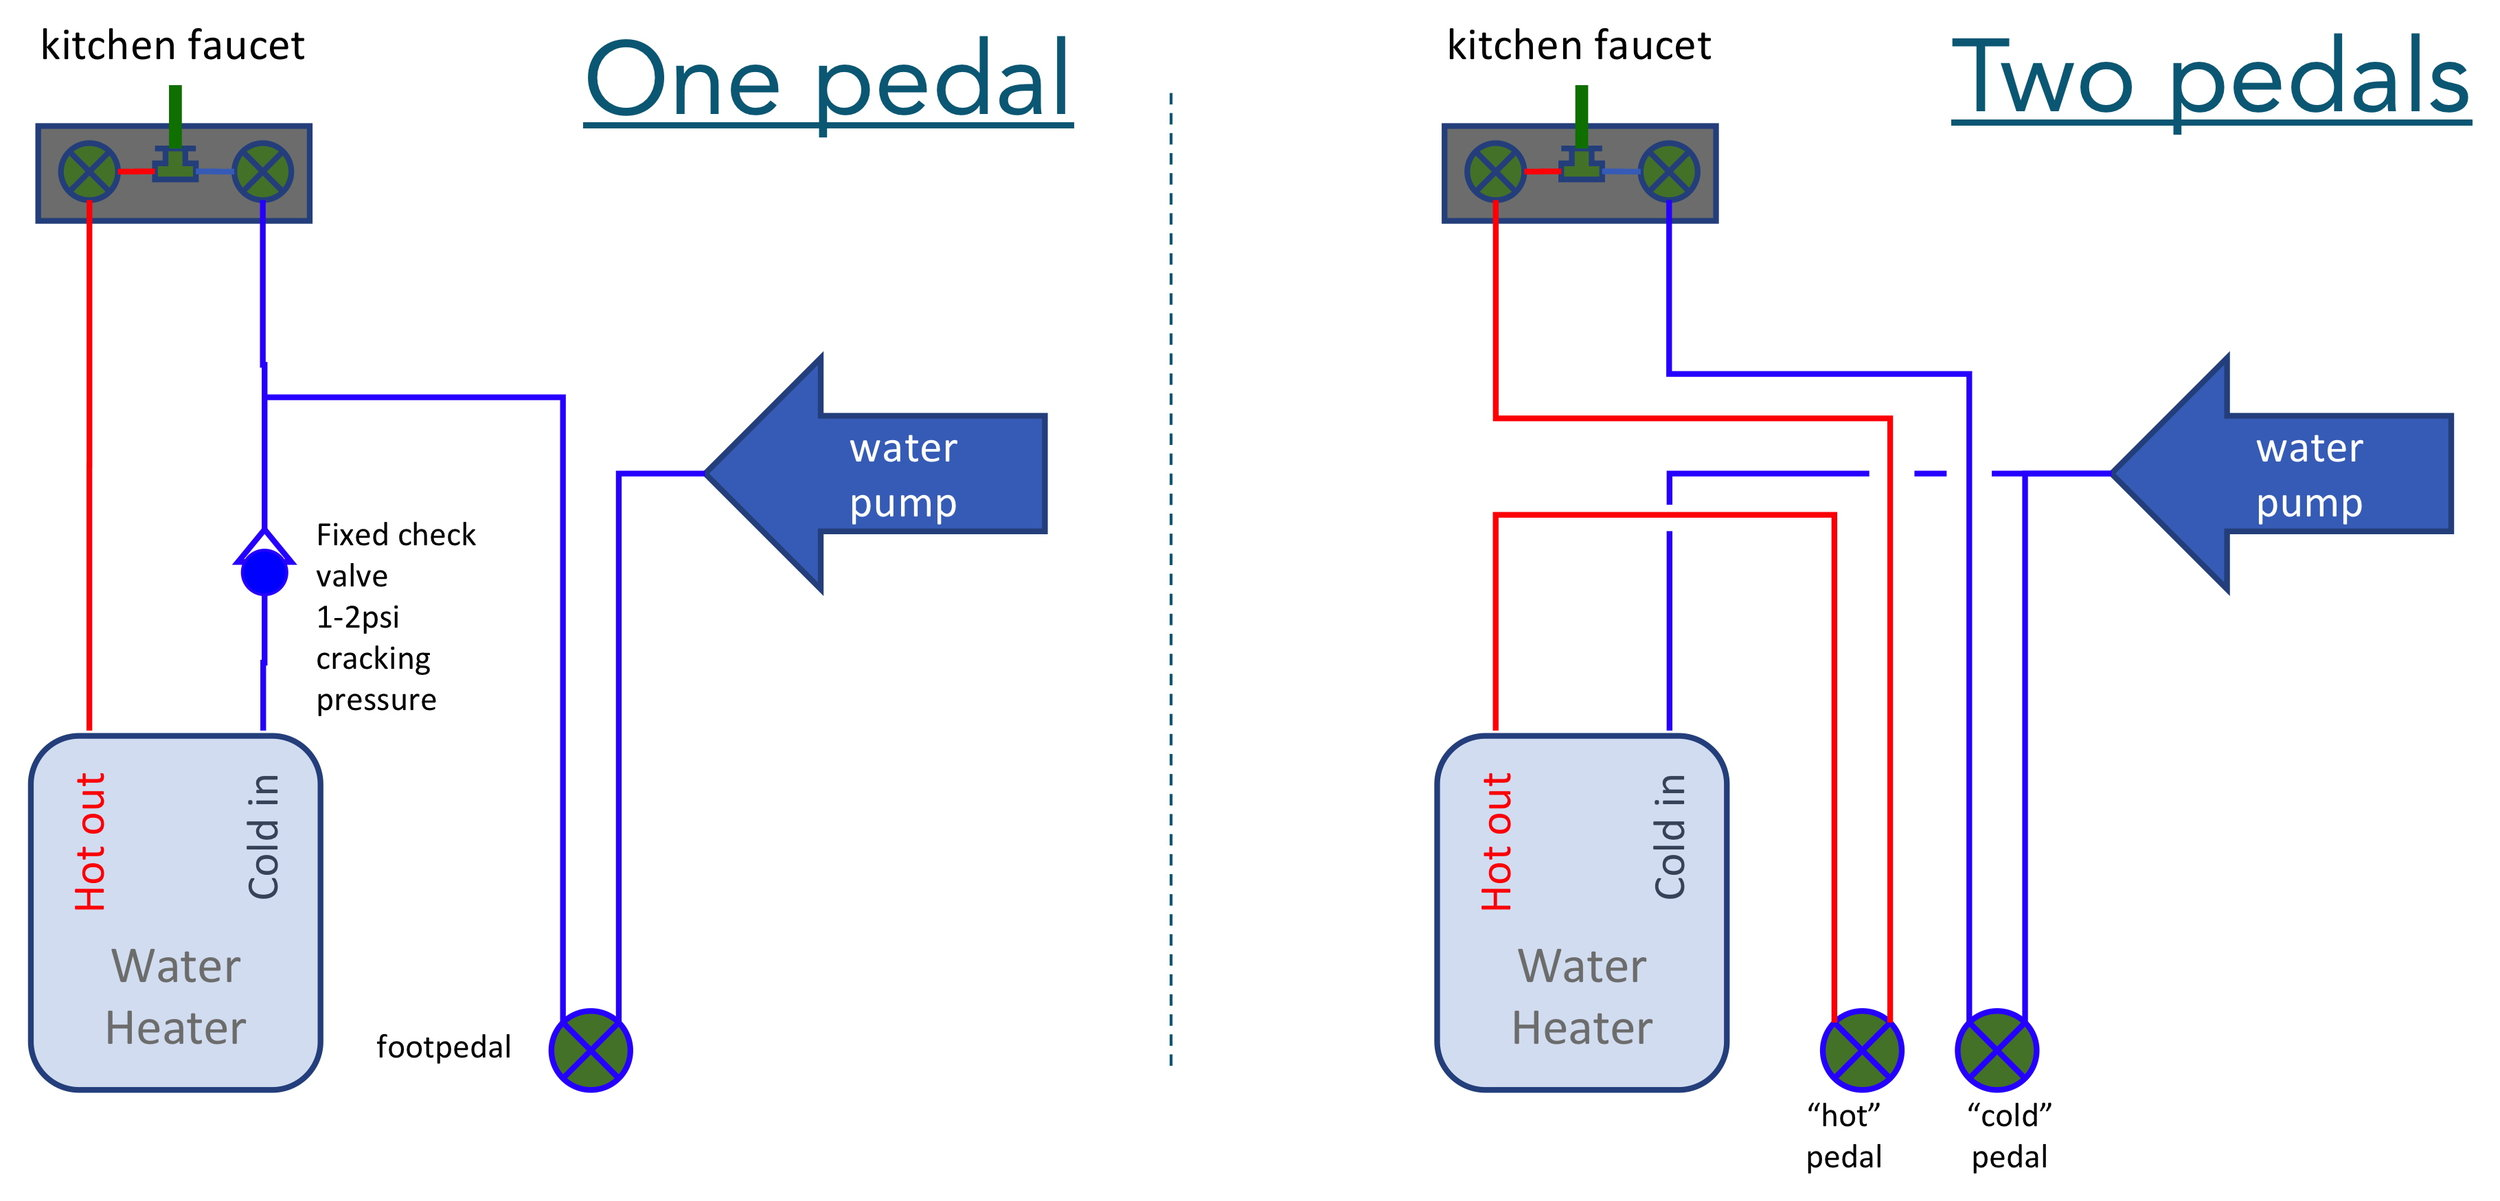 How To Save Tons Of Water With A Kitchen Sink Foot Pedal Live Small Ride Free Sustainable Solar Powered Rv